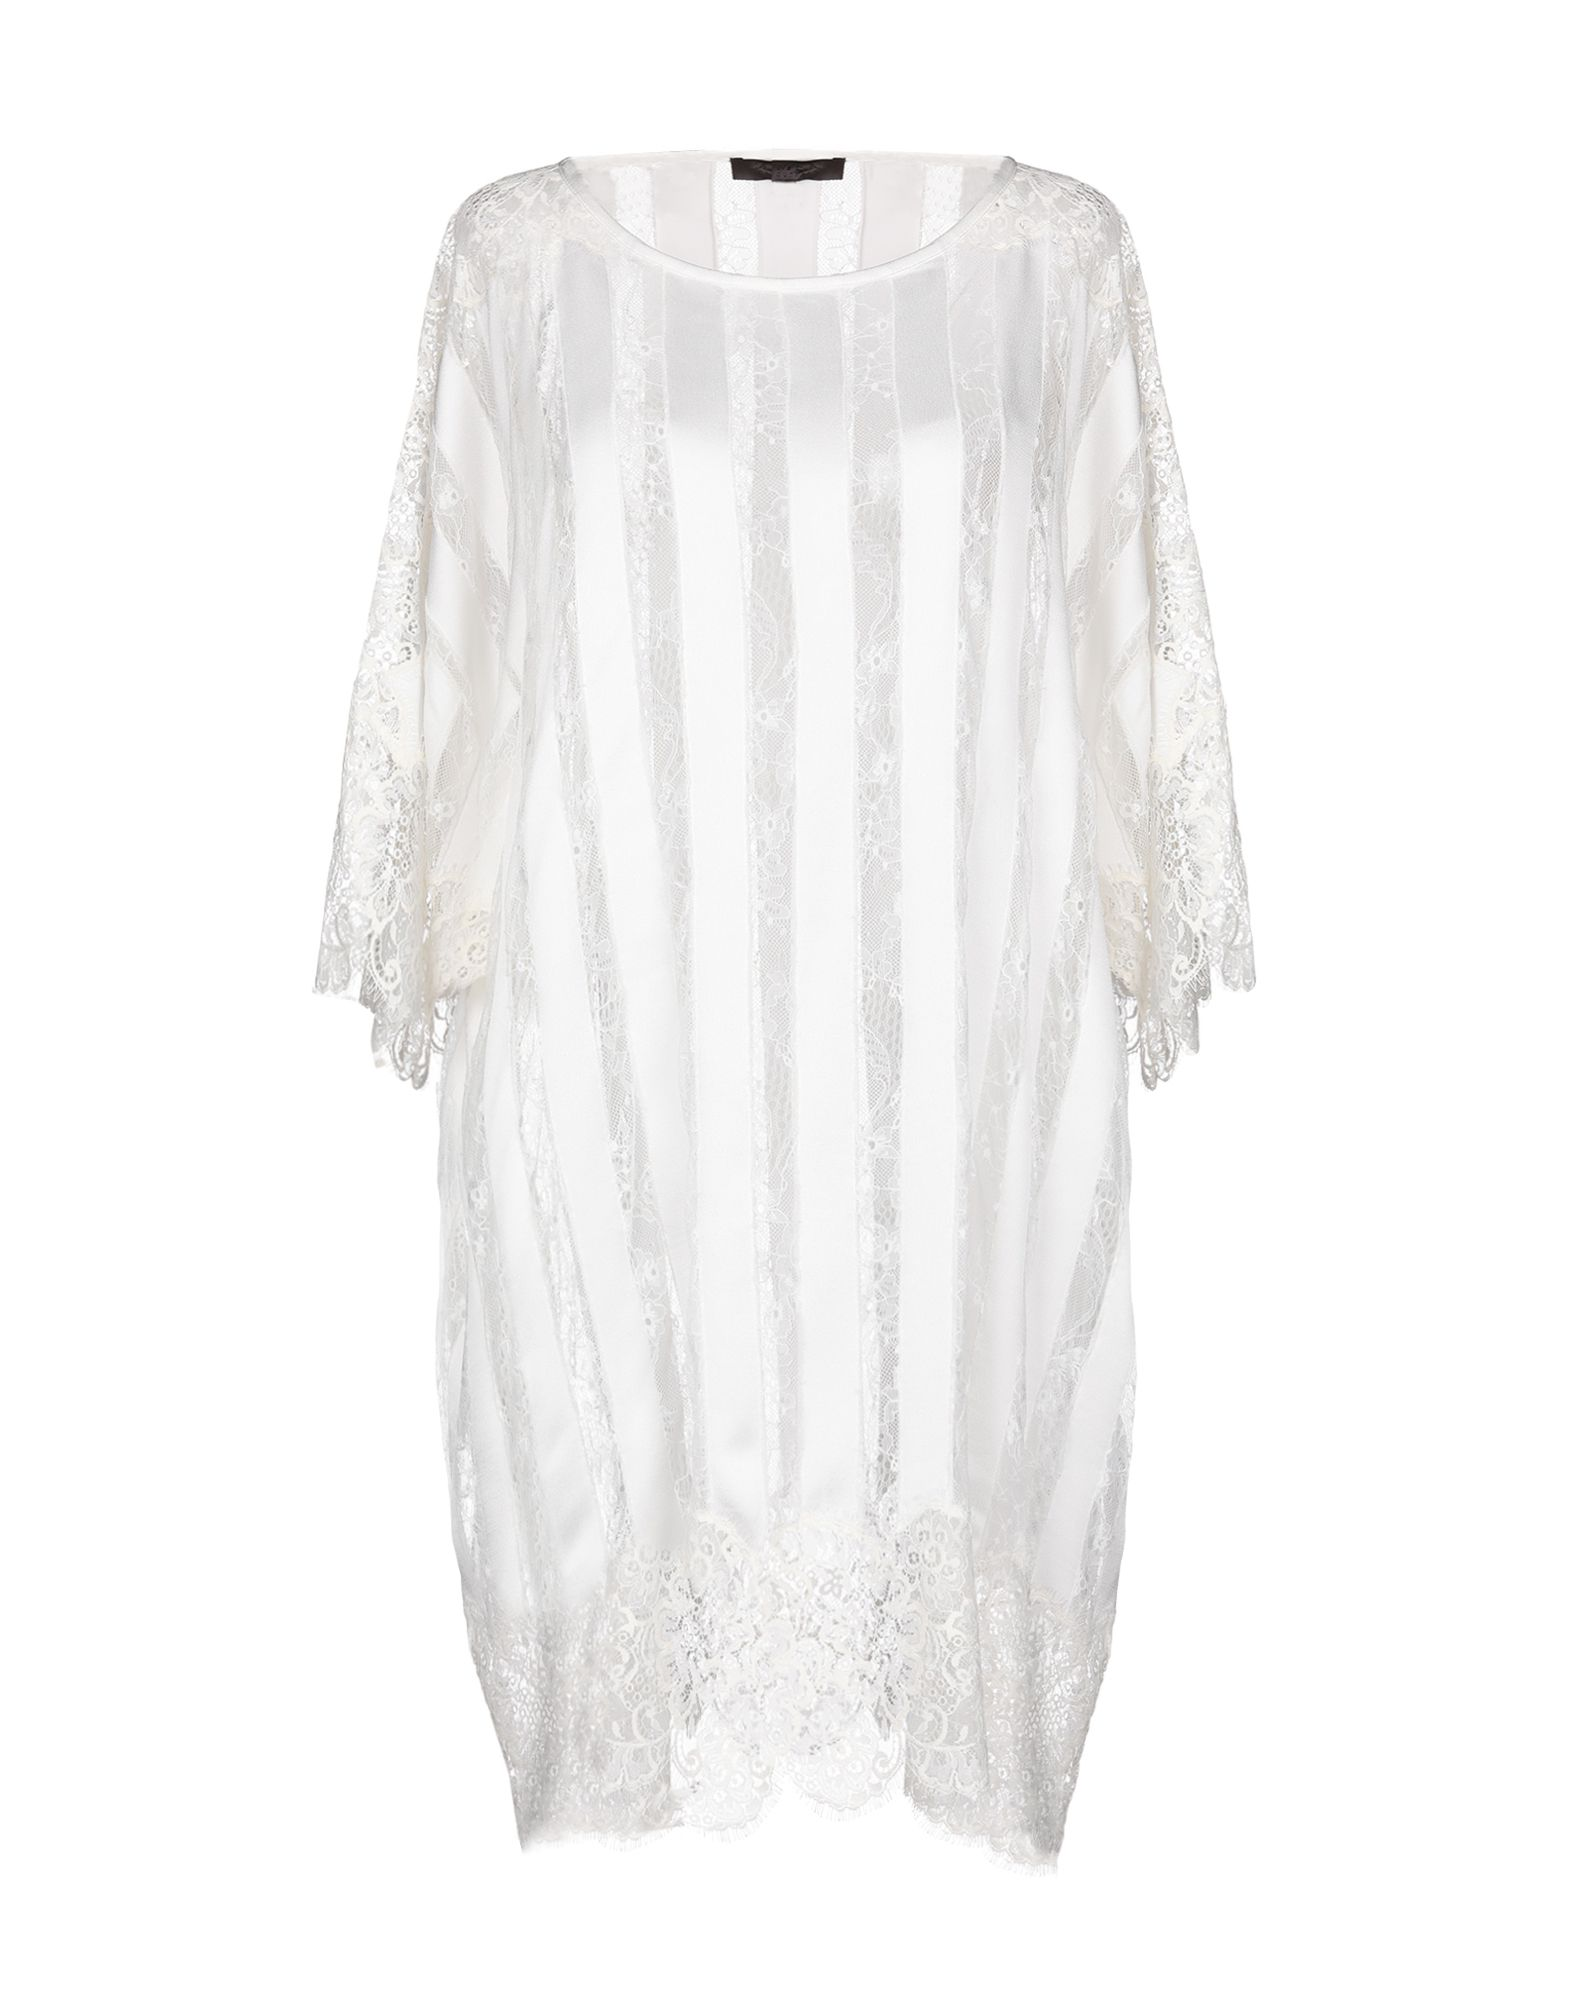 AMEN COUTURE Blouses in White